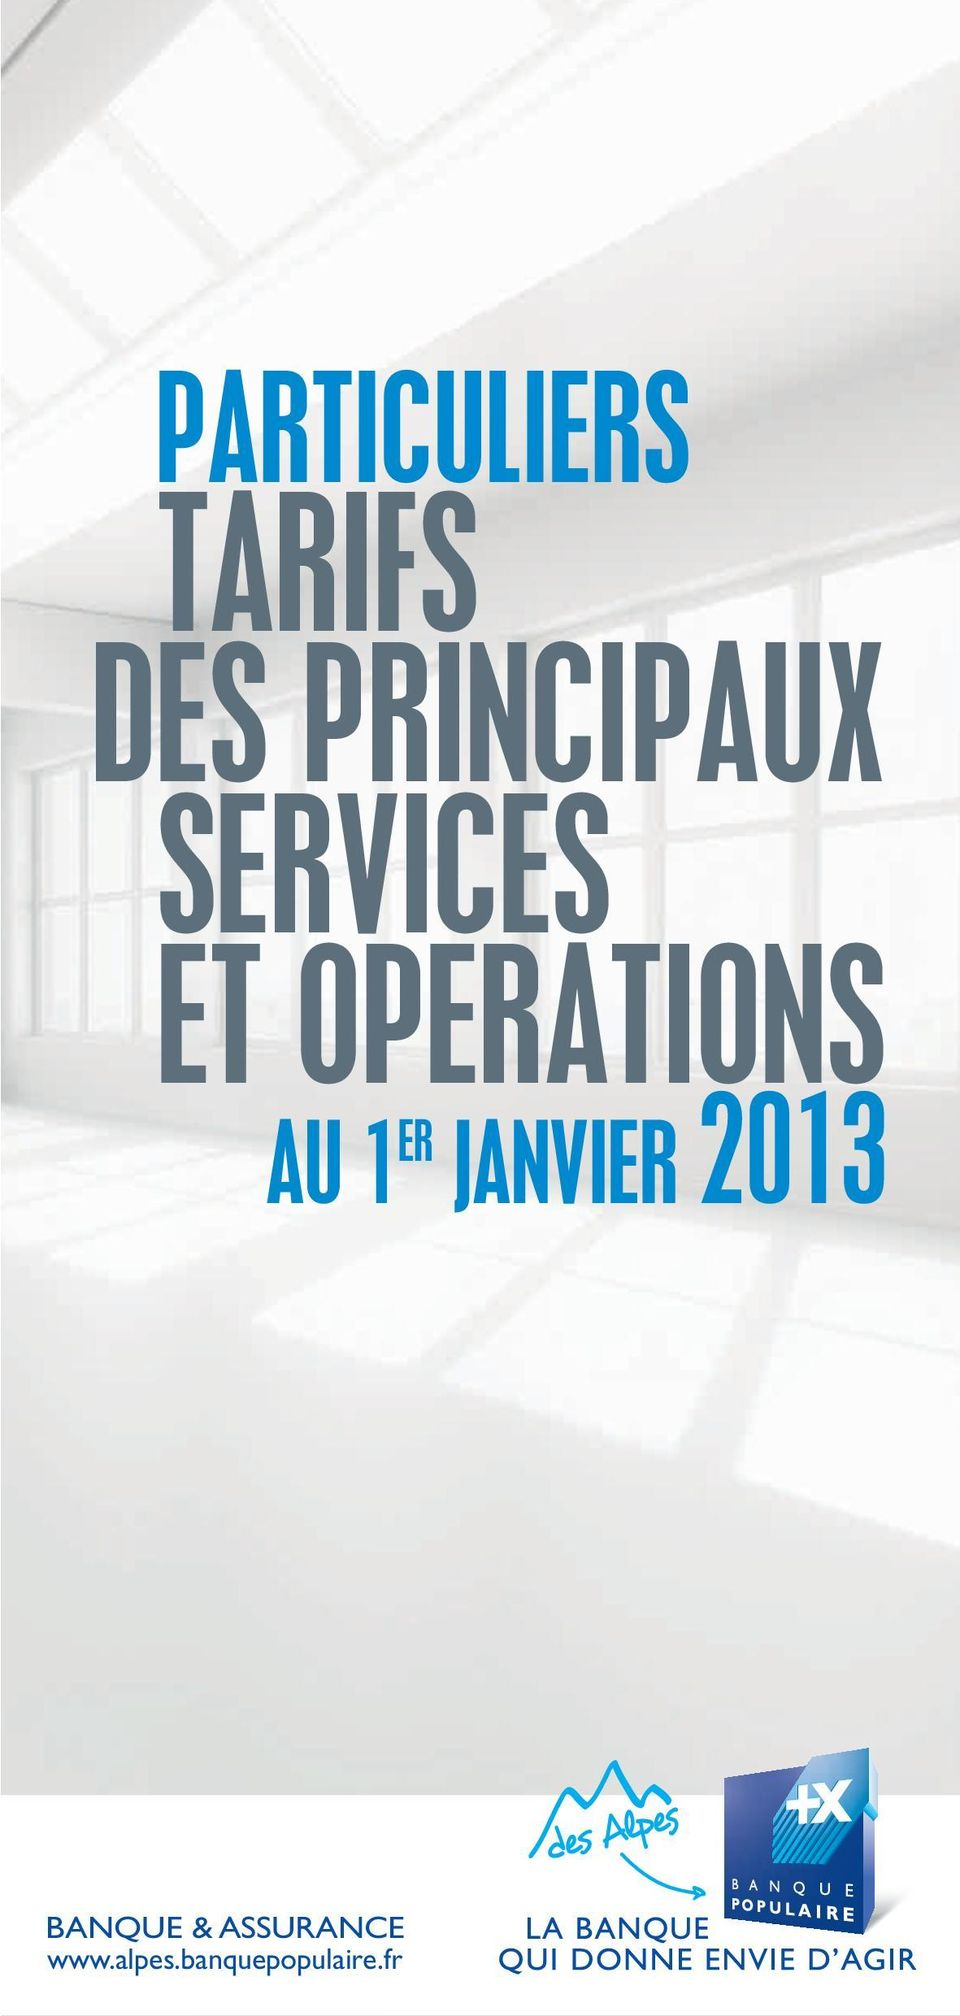 OPERATIONS AU 1 ER JANVIER 2013